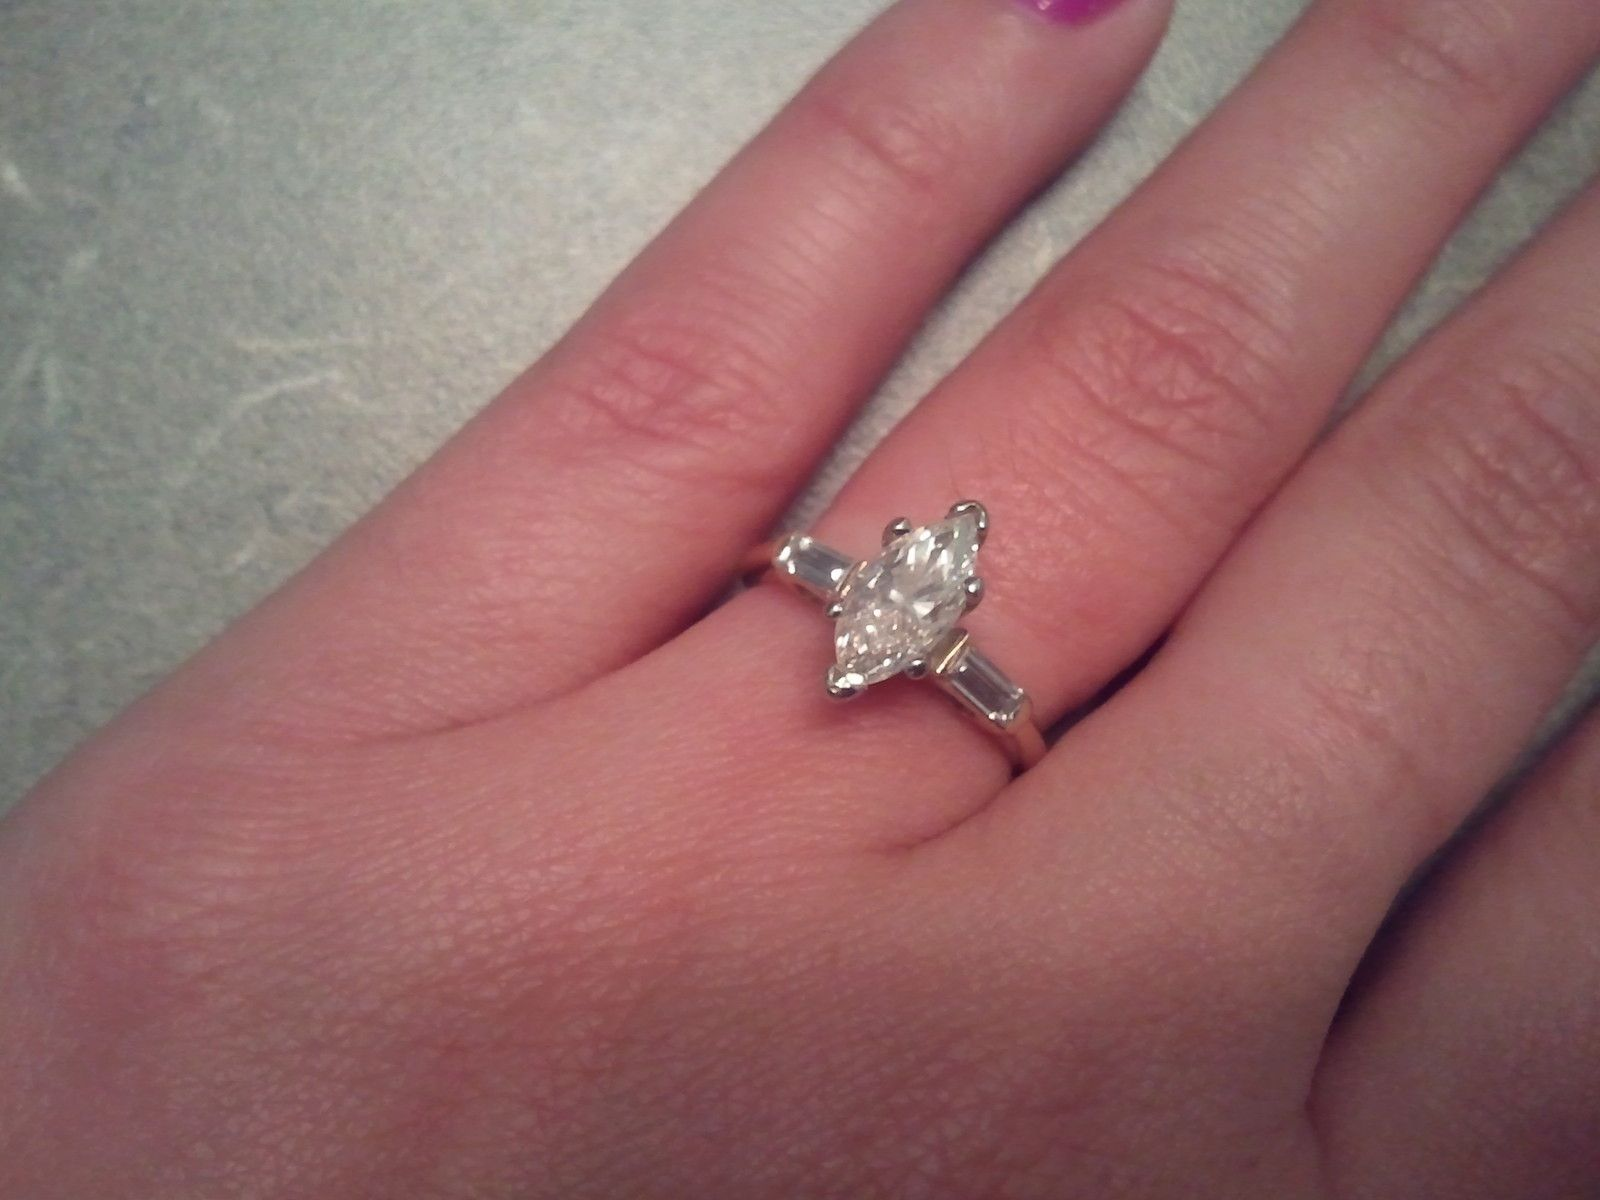 Marquise Cut | Marquise Engagement Rings | Pinterest | Marquise cut ...